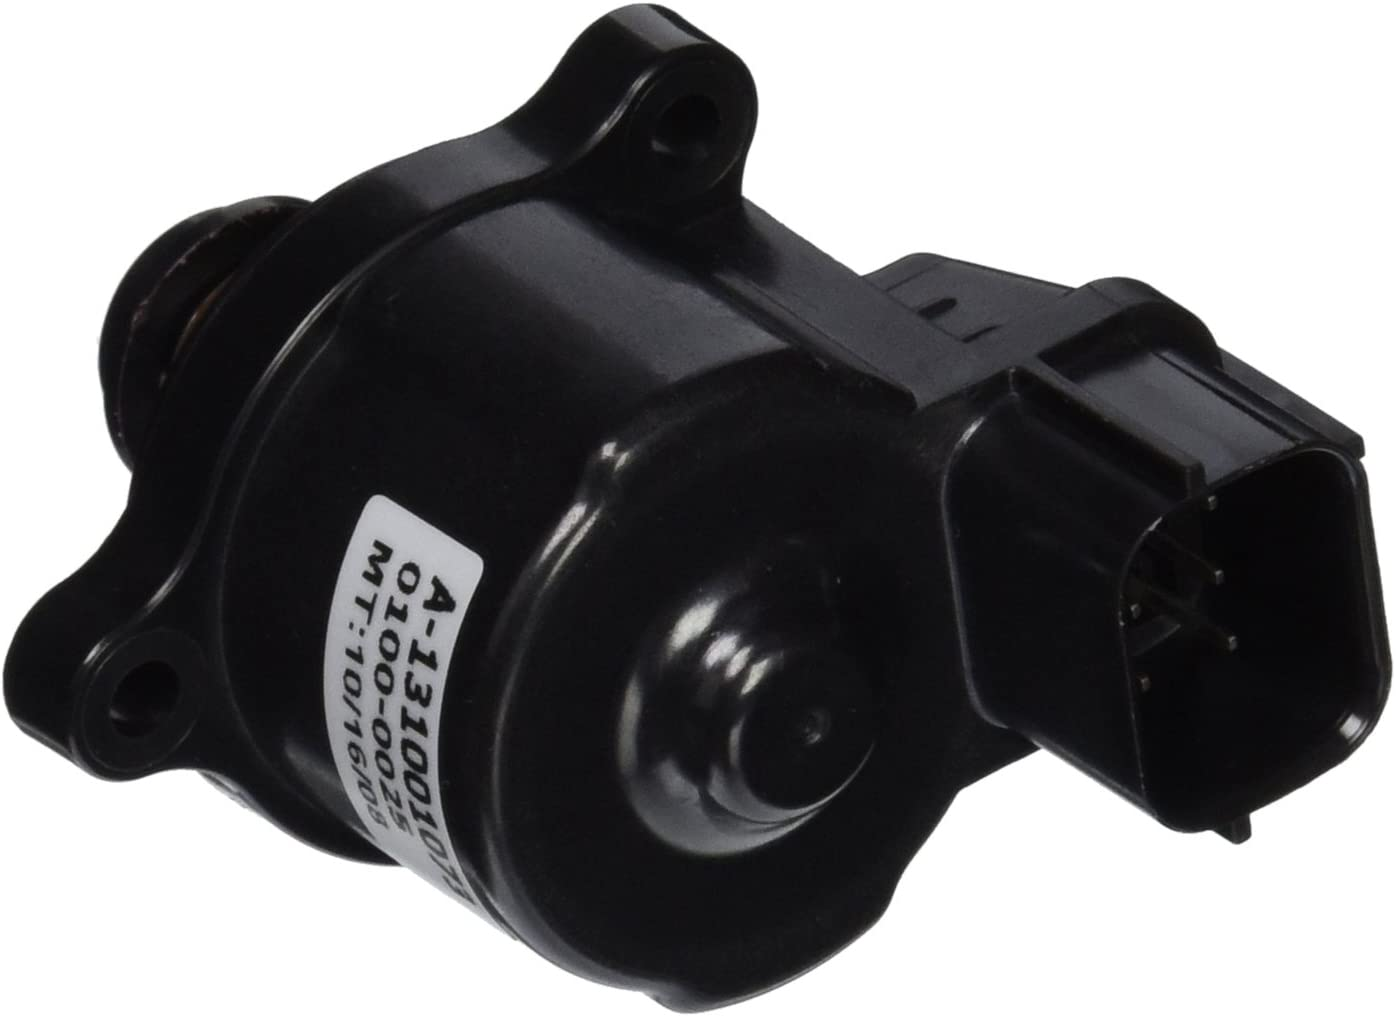 Standard Motor Products Safety and trust AC254 Valve Dealing full price reduction Idle Air Control